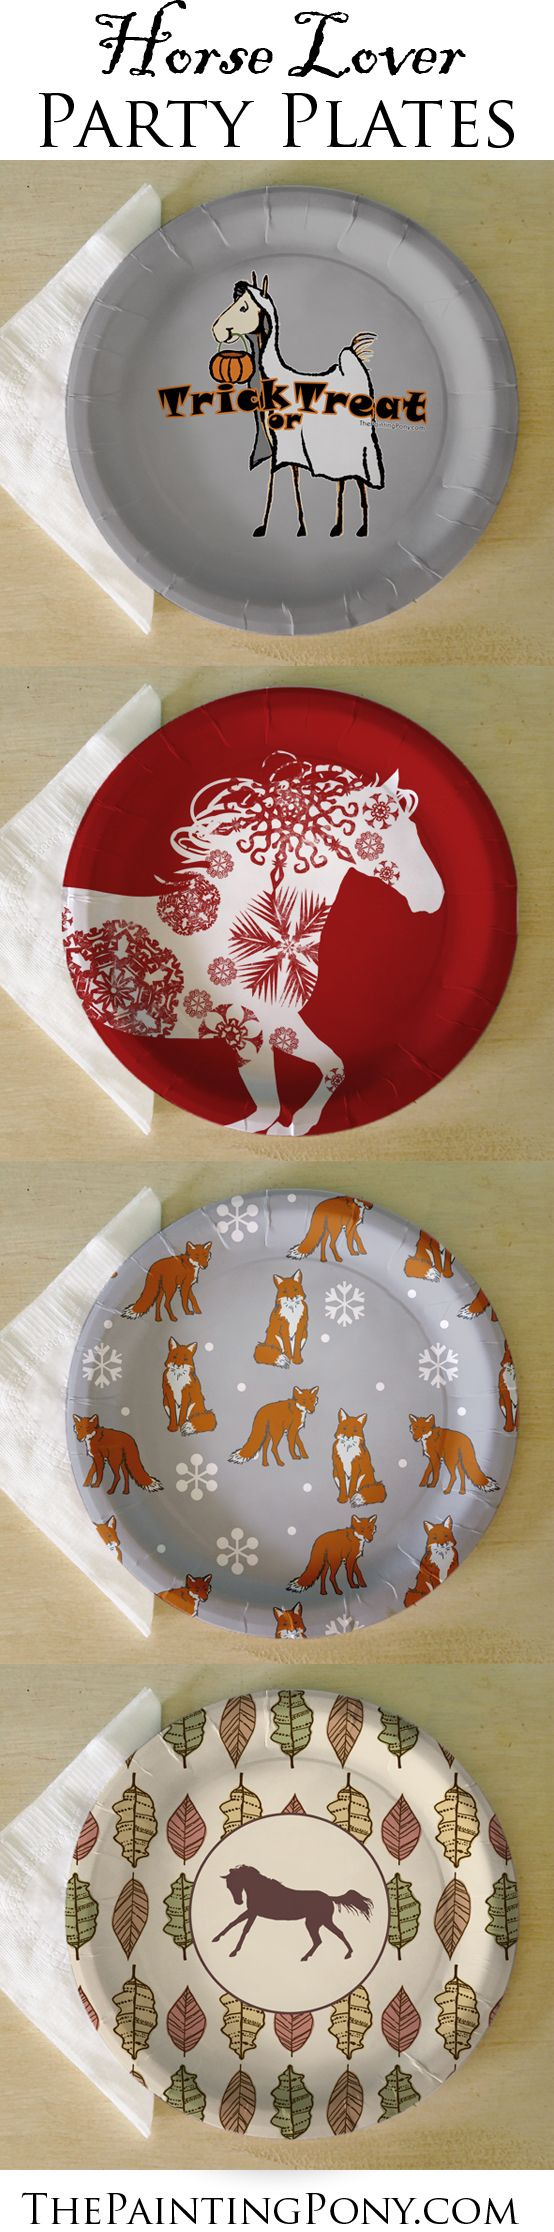 Equestrian Stationery - Wedding \u0026 Party Favors - Horse Lover Paper Party Plates : themed paper plates - pezcame.com